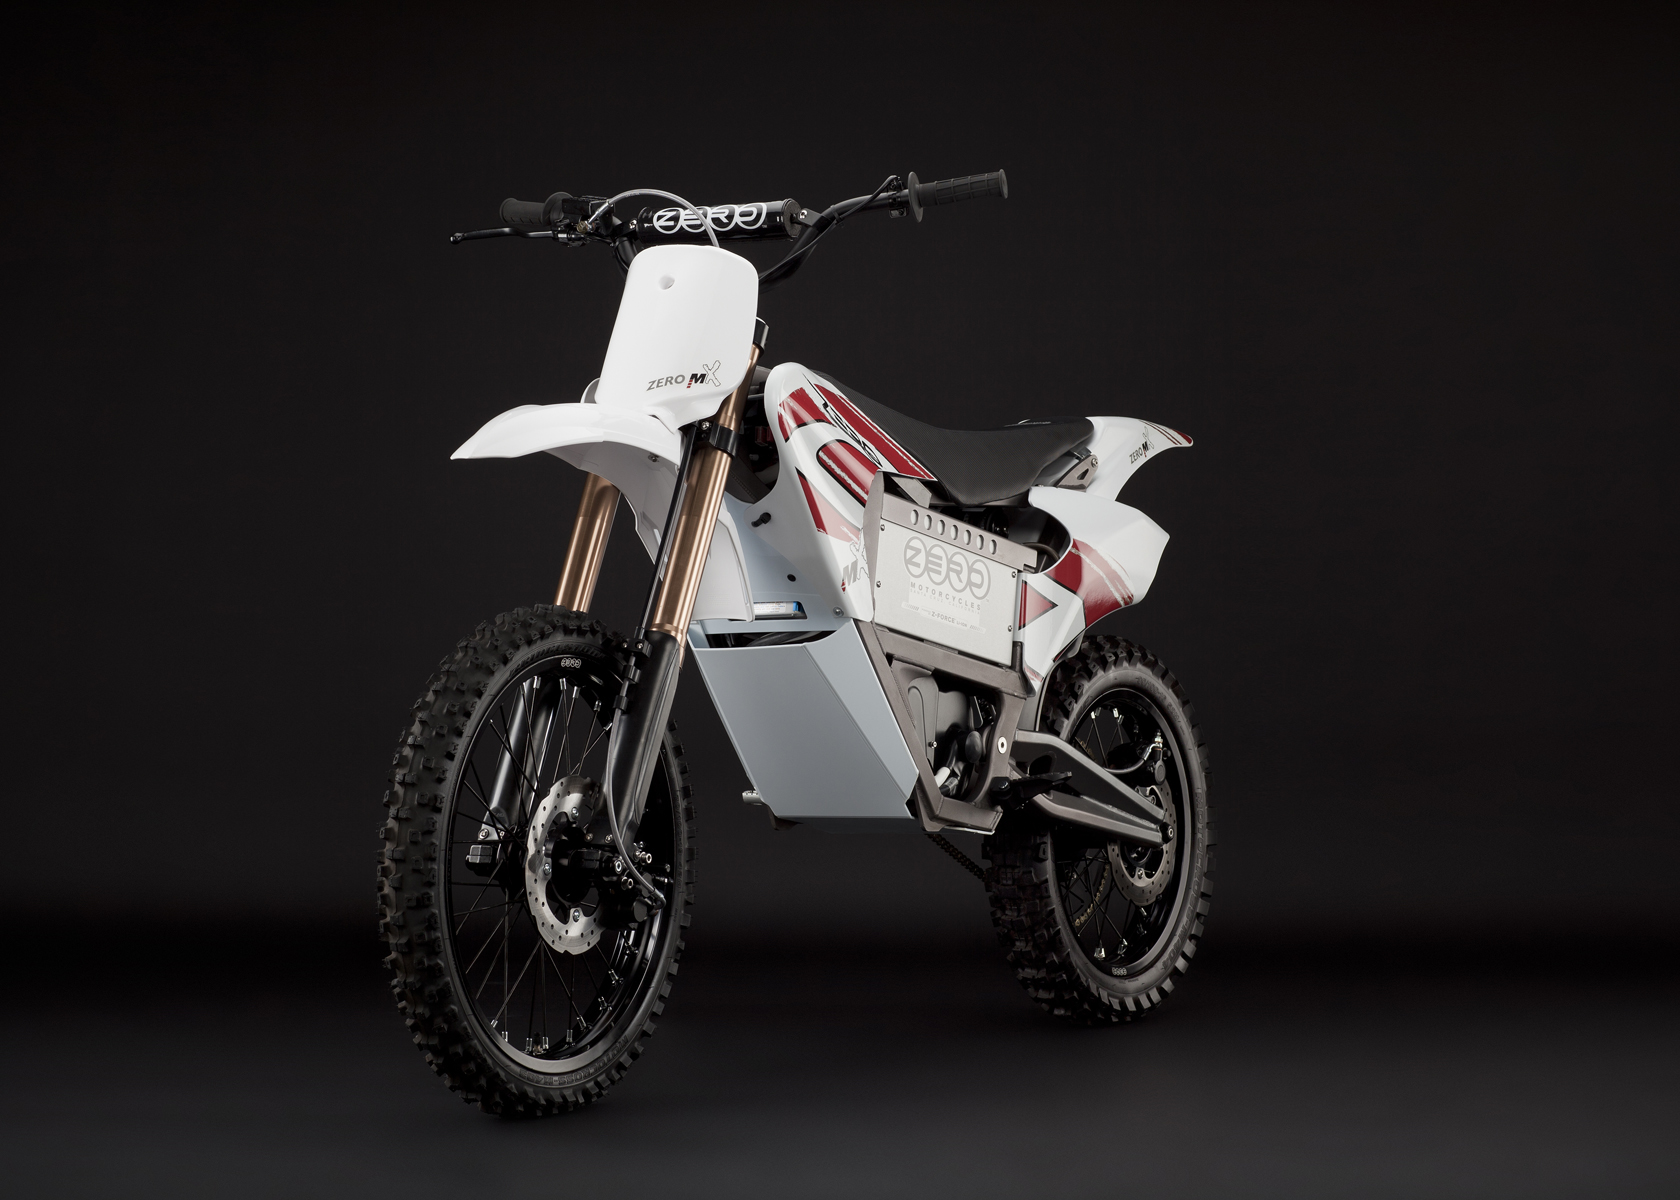 '.2011 Zero MX Electric Motorcycle: Angle Left, Dirt Model.'